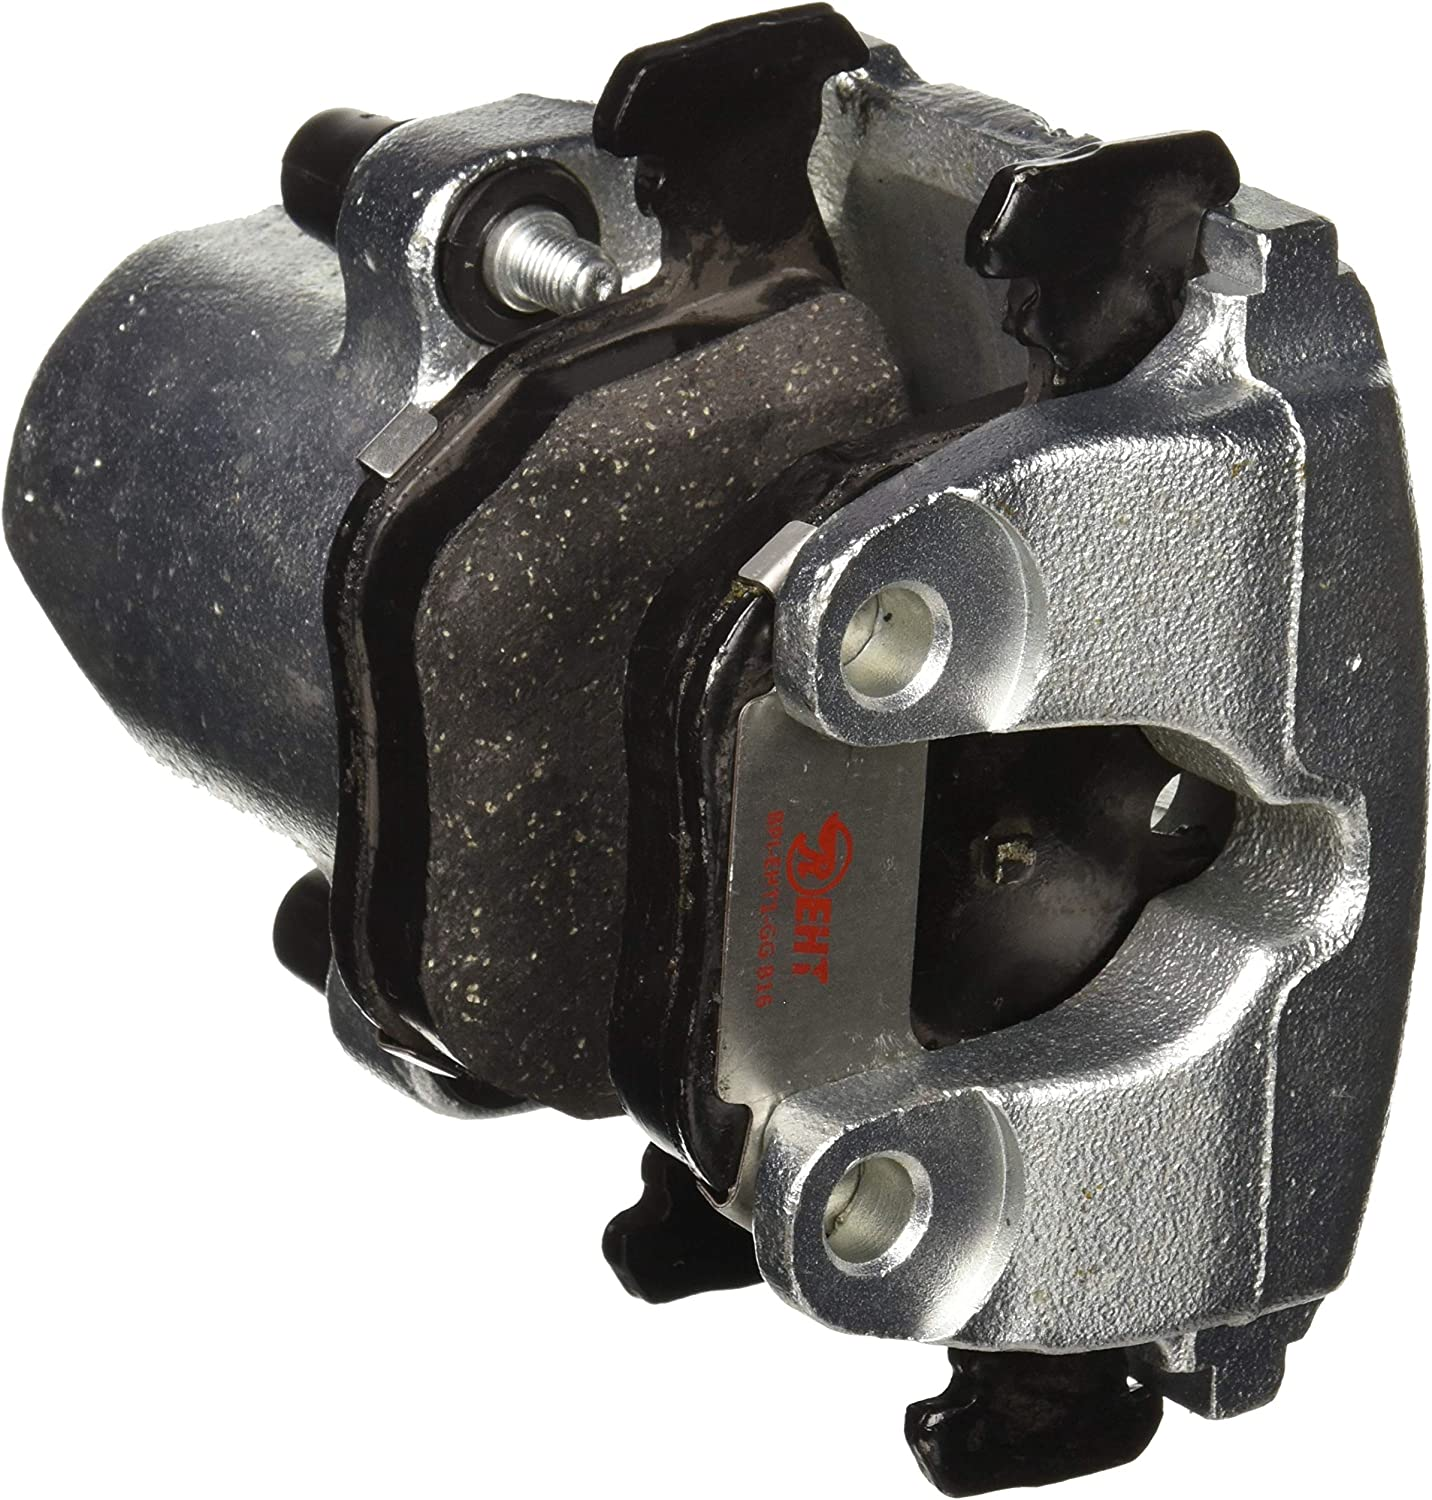 Raybestos RC12140C RPT Rust Prevention Technology Brake Caliper